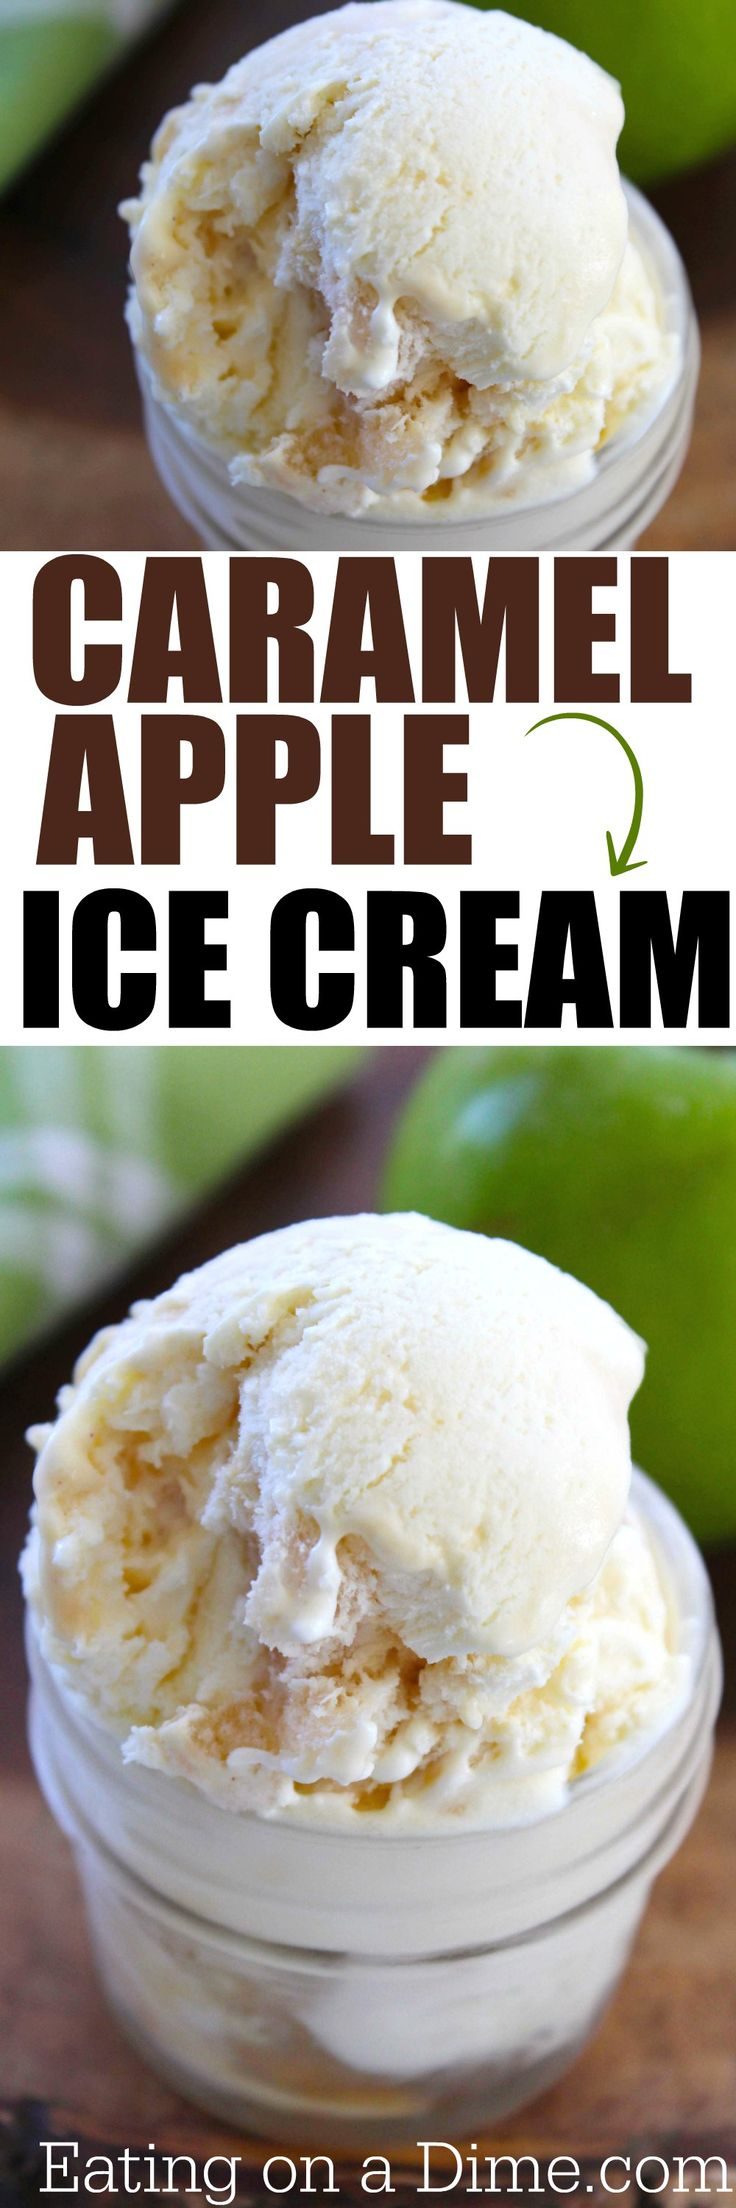 caramel apple ice cream recipe.  There is nothing better on a hot day then to enjoy some fresh homemade ice cream! I have a fun new recipe to share with you today that would be perfect for one of those hot days – Caramel Apple Ice Cream. Only 4 ingredients!